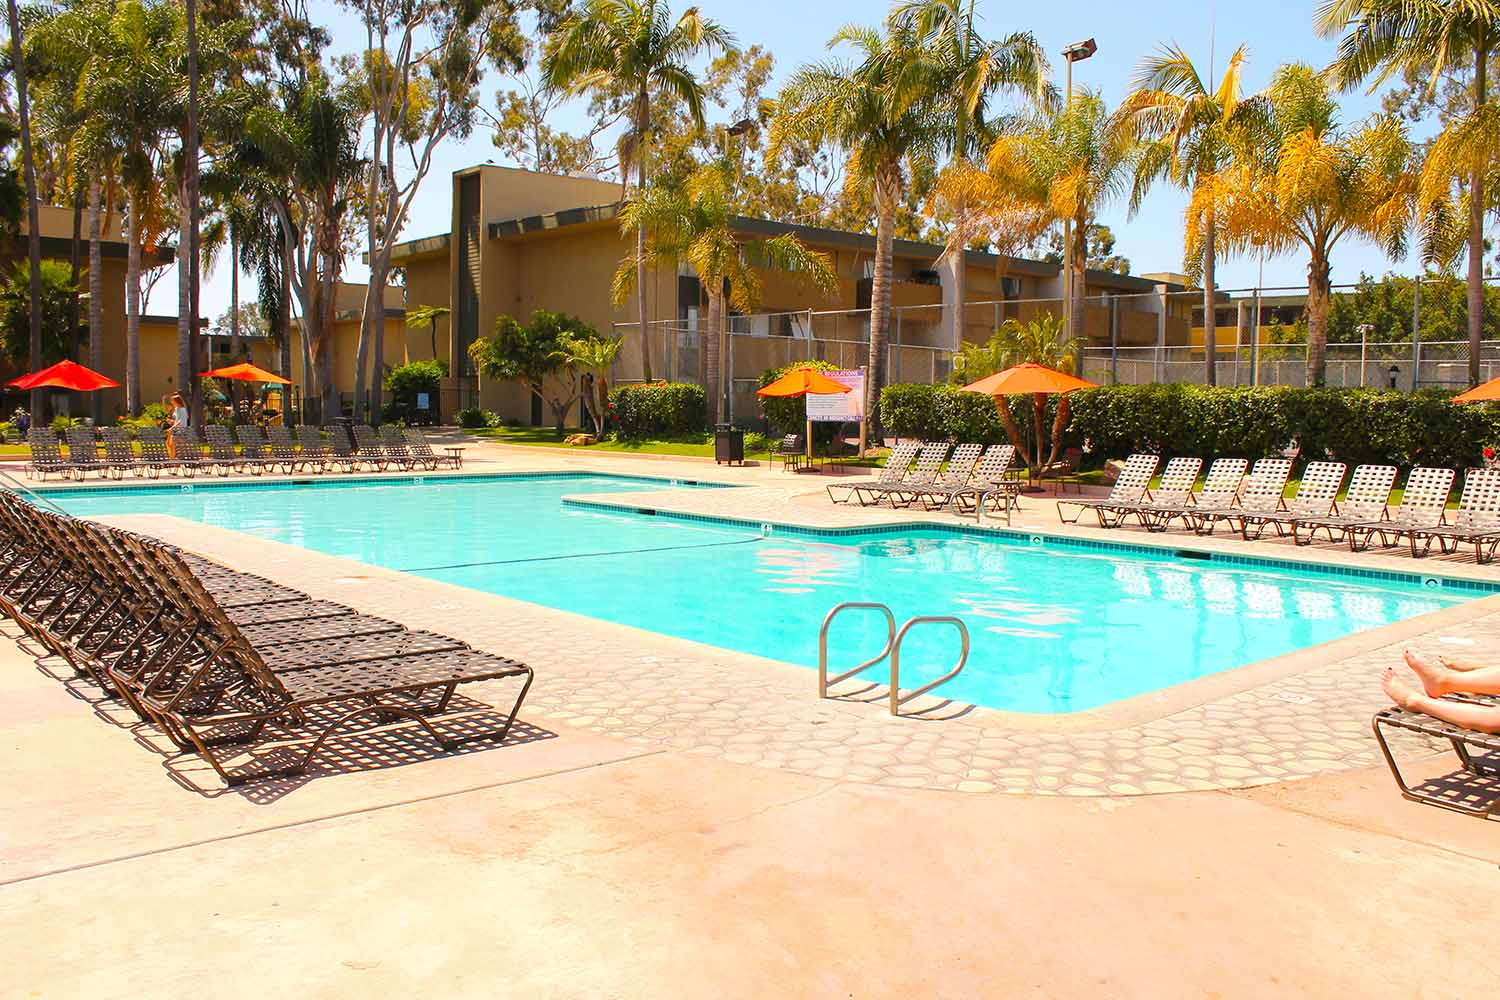 San Diego_Bay Pointe Apartments_Pool_01